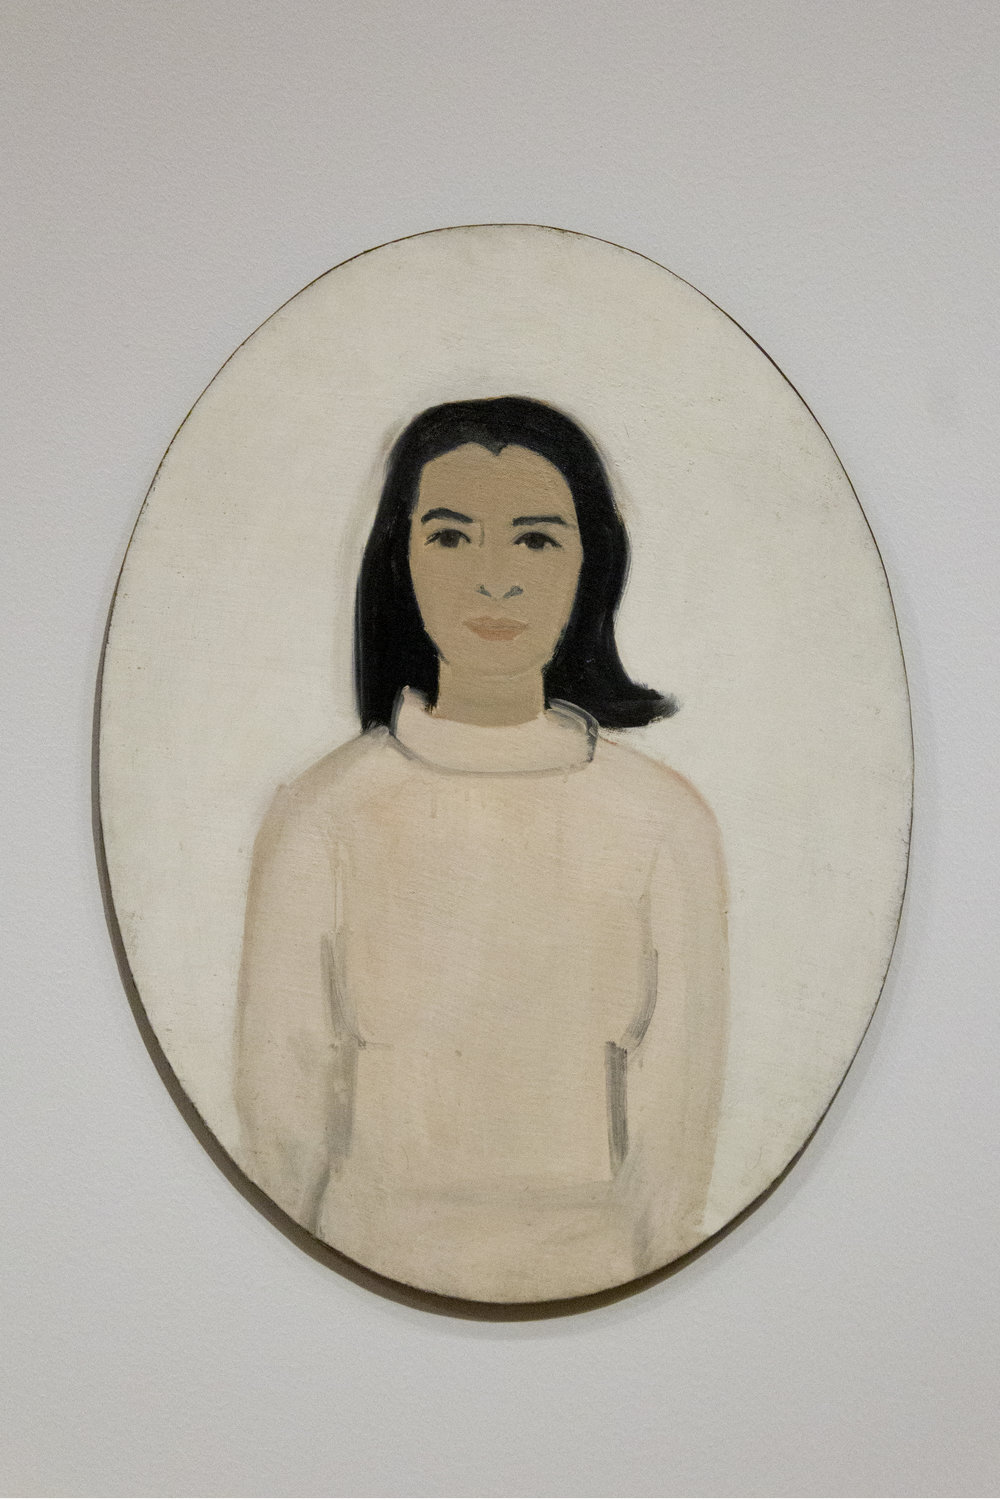 """Ada (Oval)"". Oil on canvas. Alex Katz. Image courtesy of author."